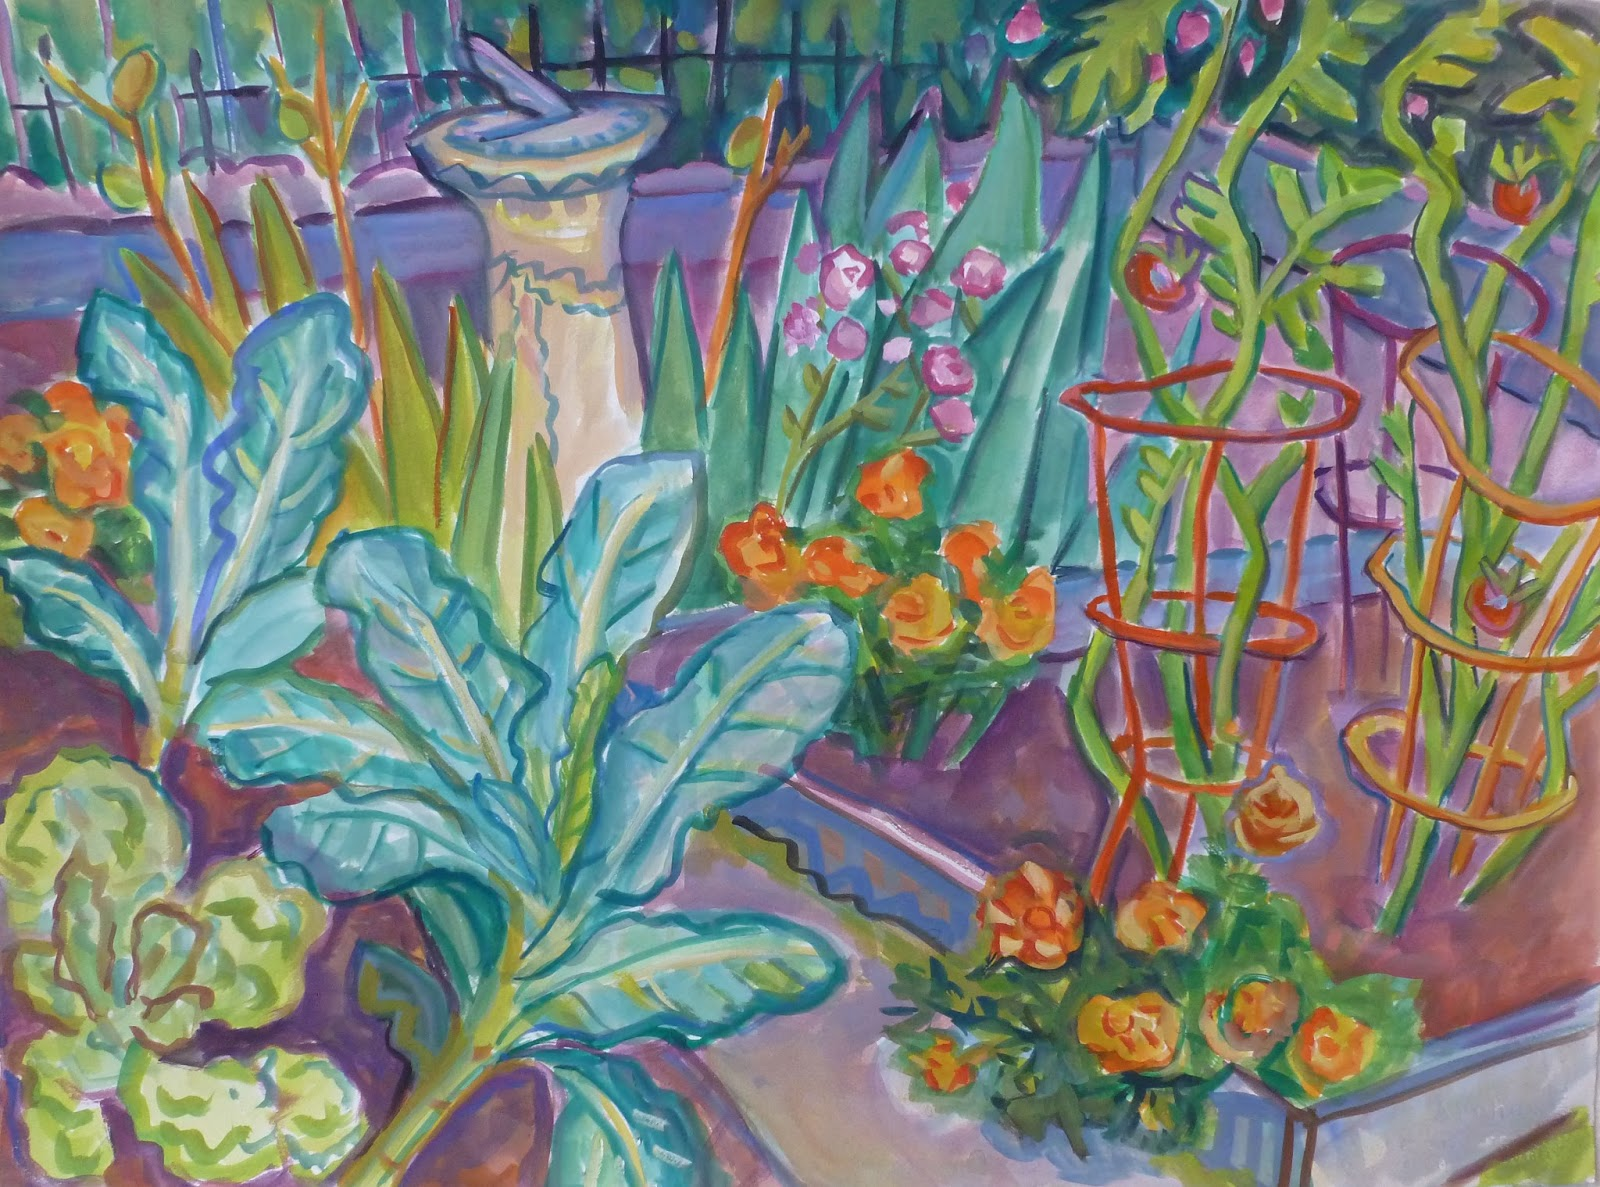 Admirable Kate Knapp Artist Blog Our Vegetable Garden In The Berkshires Interior Design Ideas Gentotryabchikinfo